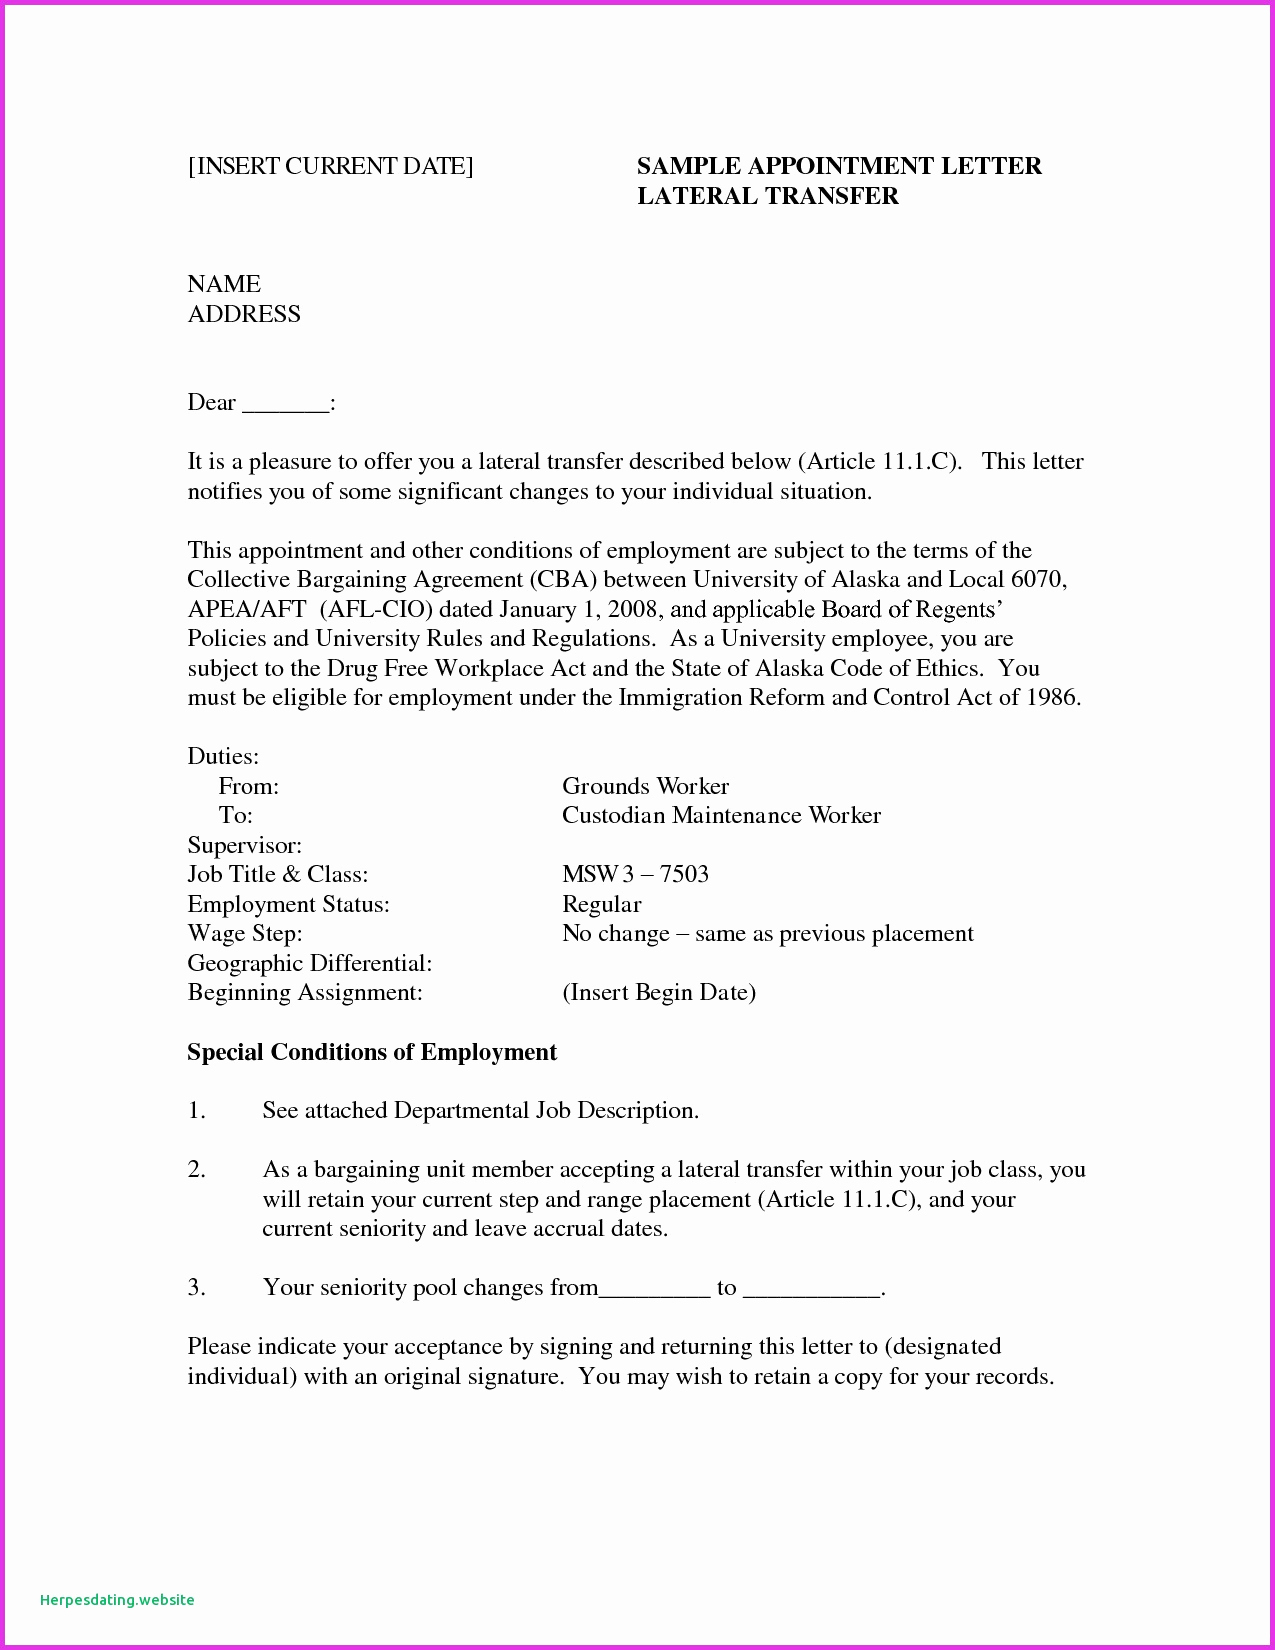 Letter Of Intent Investment Template - Business Partnership Separation Agreement Template New Awesome